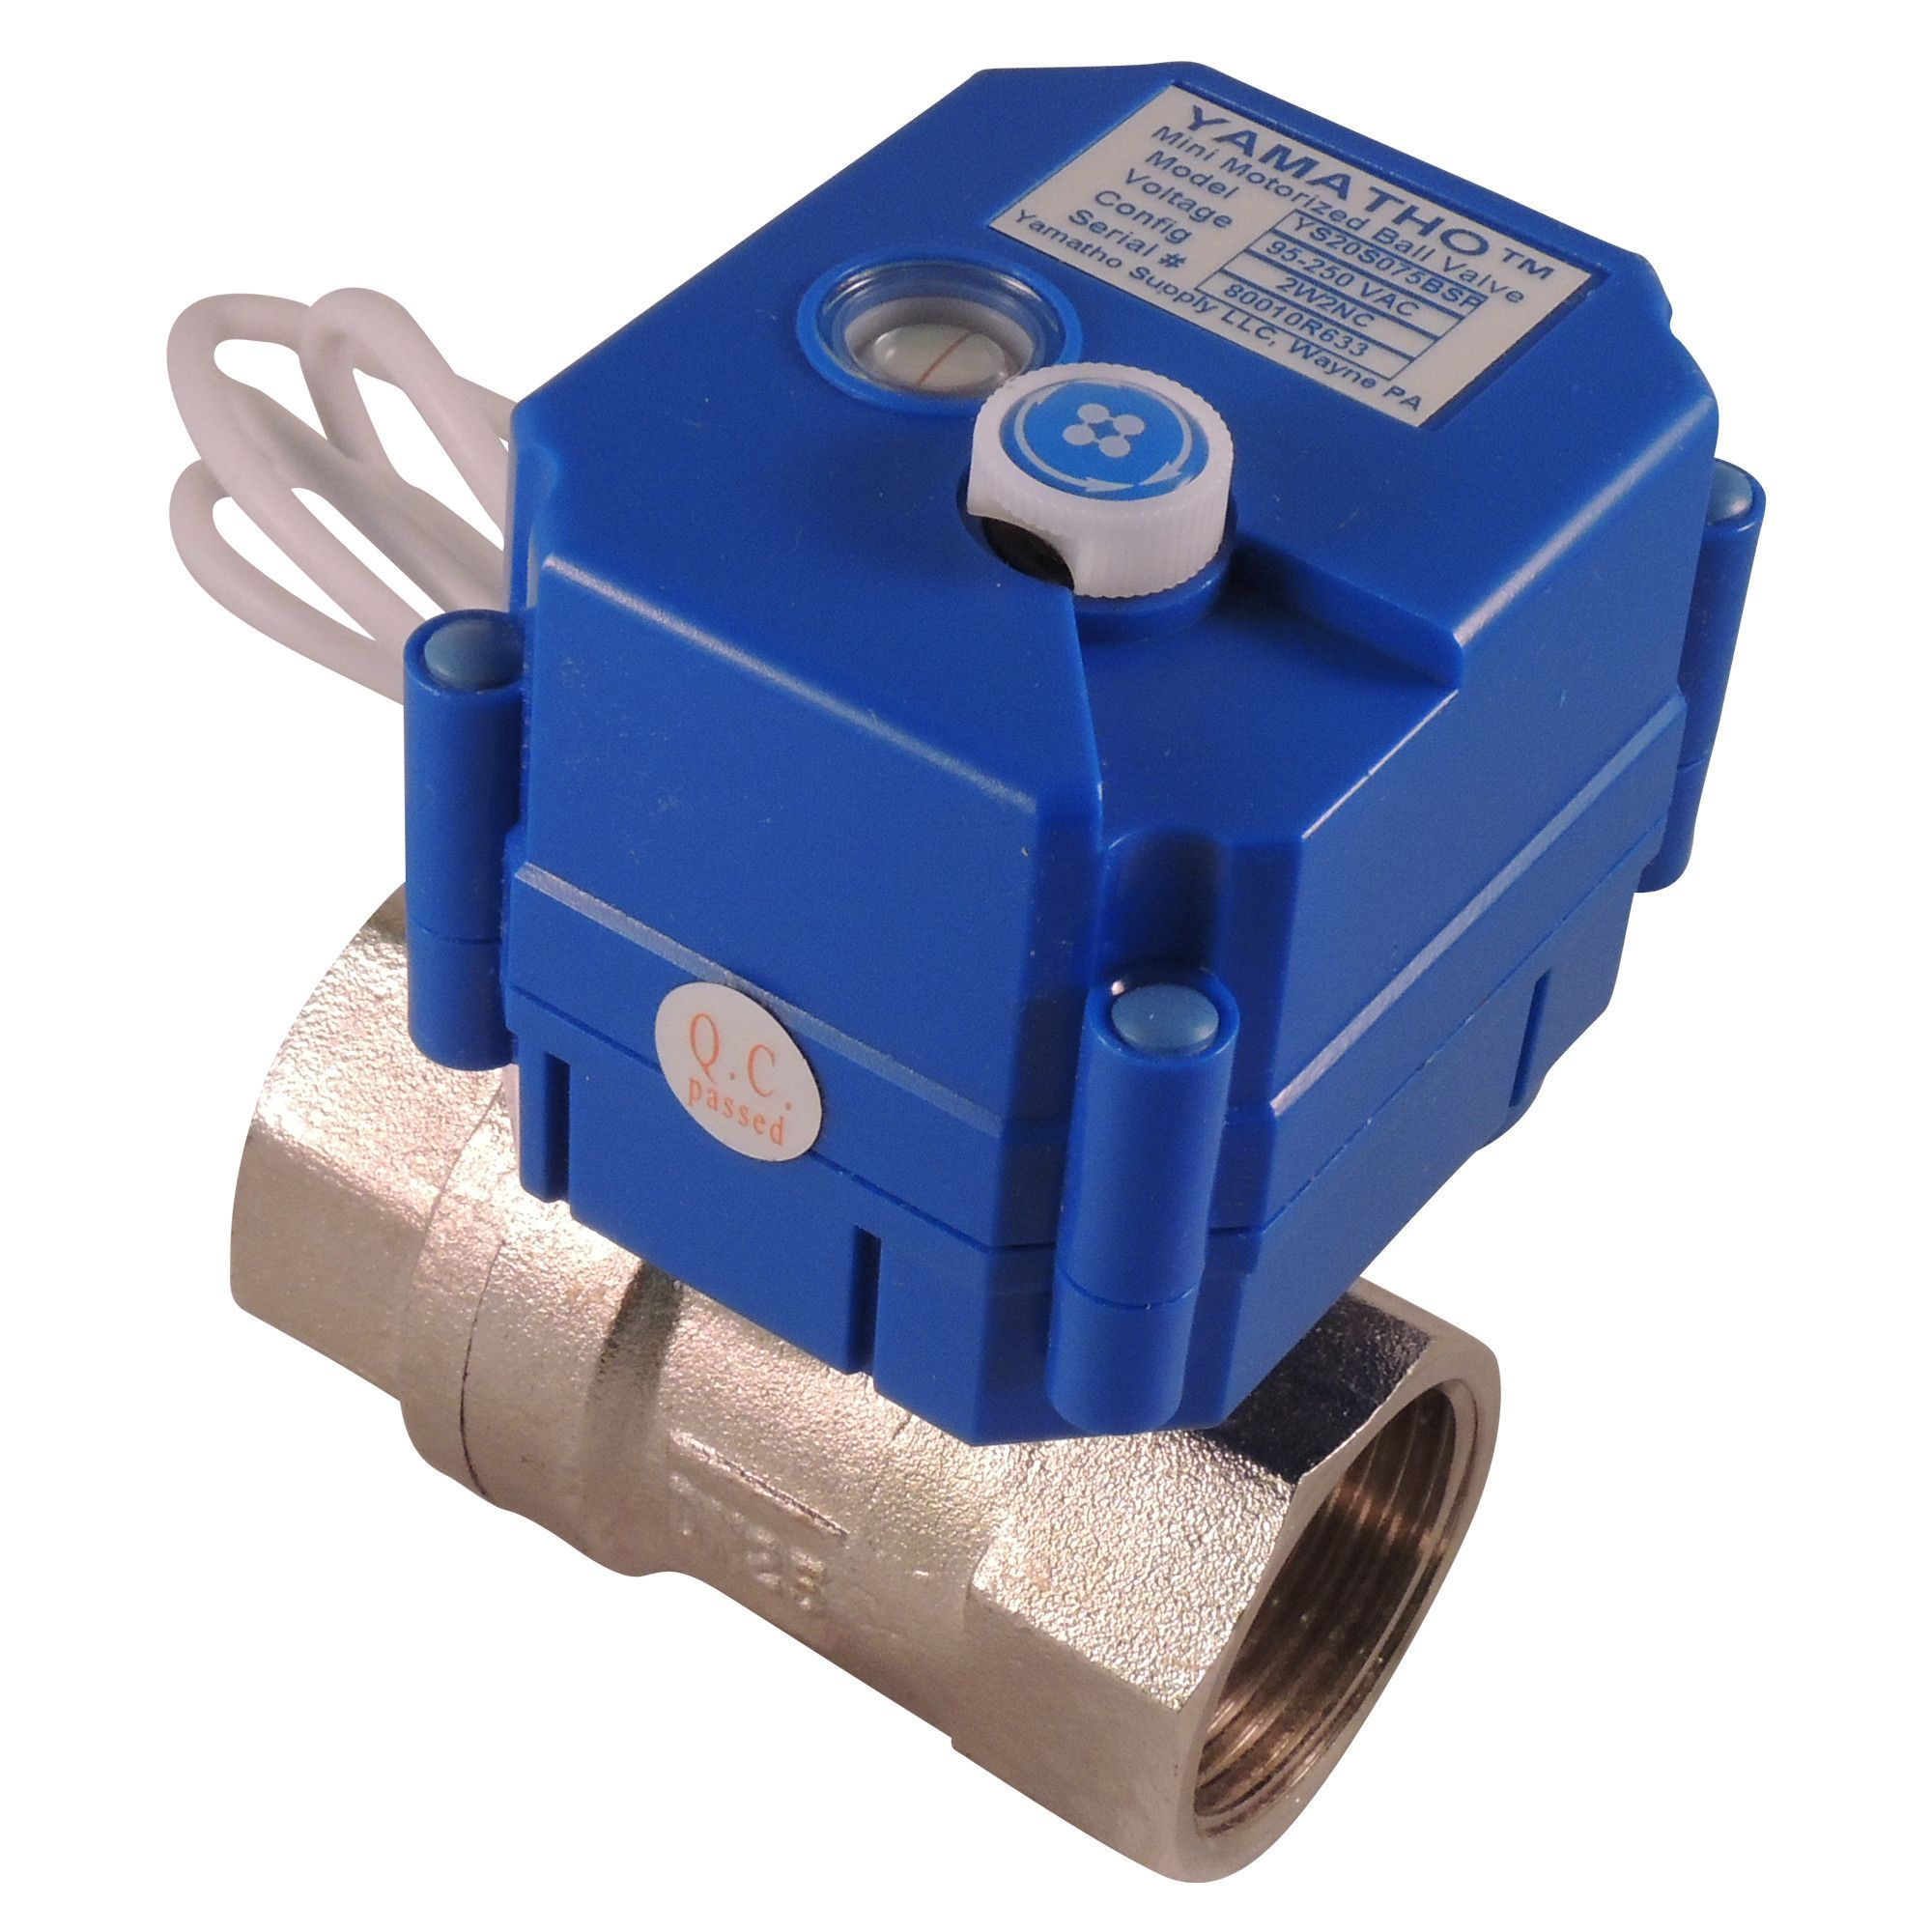 Electric Ball Valve Ys20skt2s 2 Wires W Position Elec Ind Normally Closed 24 Vdc Yamavalve Valve Actuator Specialty Chemicals